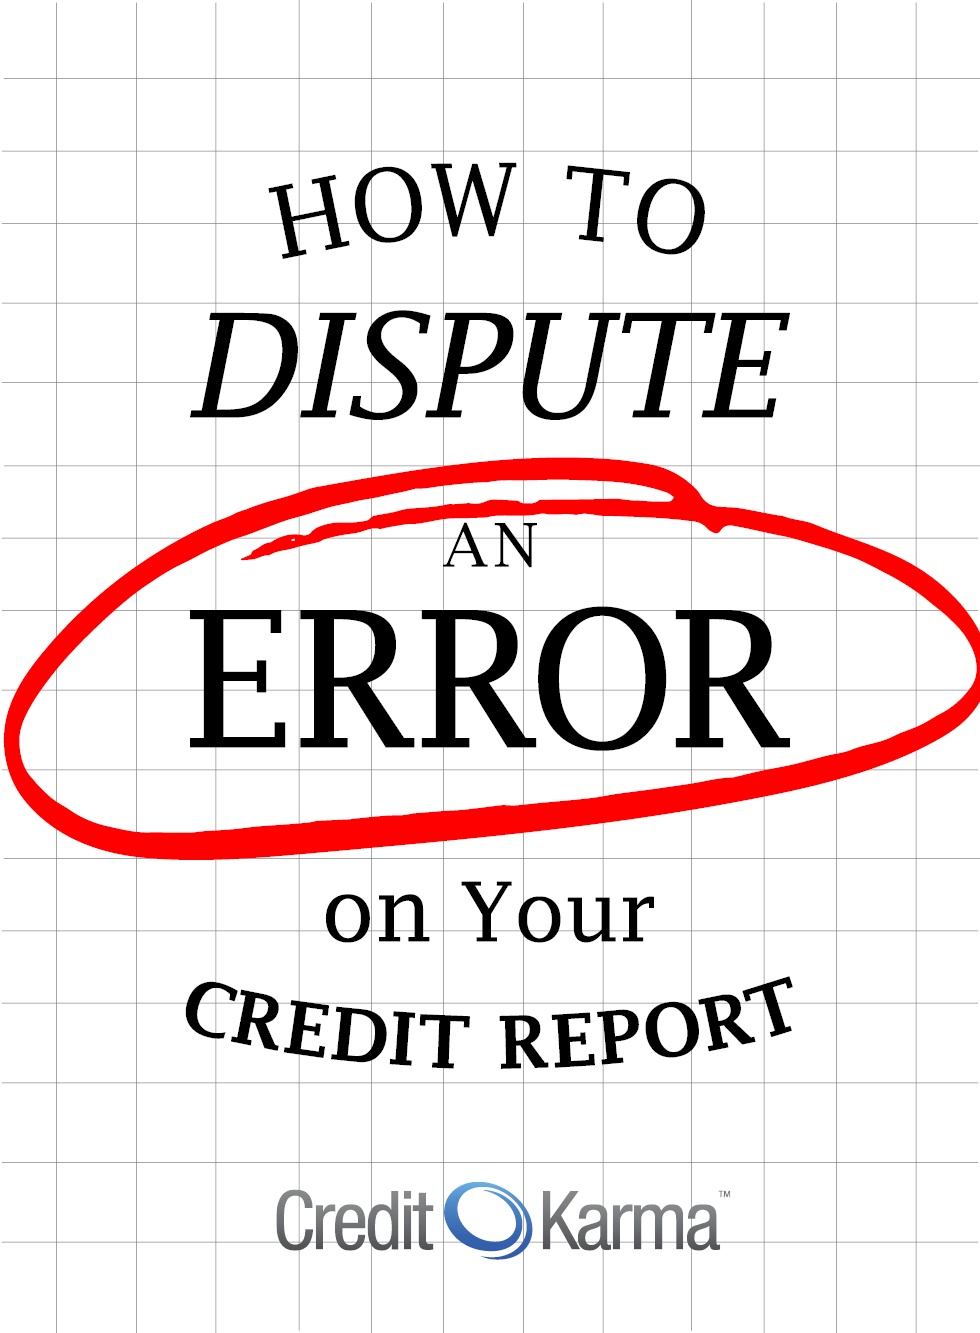 How To Dispute An Error On Your Credit Report Httpswww. Best Sports Management Universities. Assisted Living Charlottesville Va. Thomas University Online Home Care Scottsdale. Wheaton Cosmetic Dentistry Jeep Cherokee Car. Merchant Services Company Job Outlook Dentist. Brand Management Company Find Mortgage Broker. Internet Meeting Services Banks In Wilmington. Miami Community Colleges Att Business Service